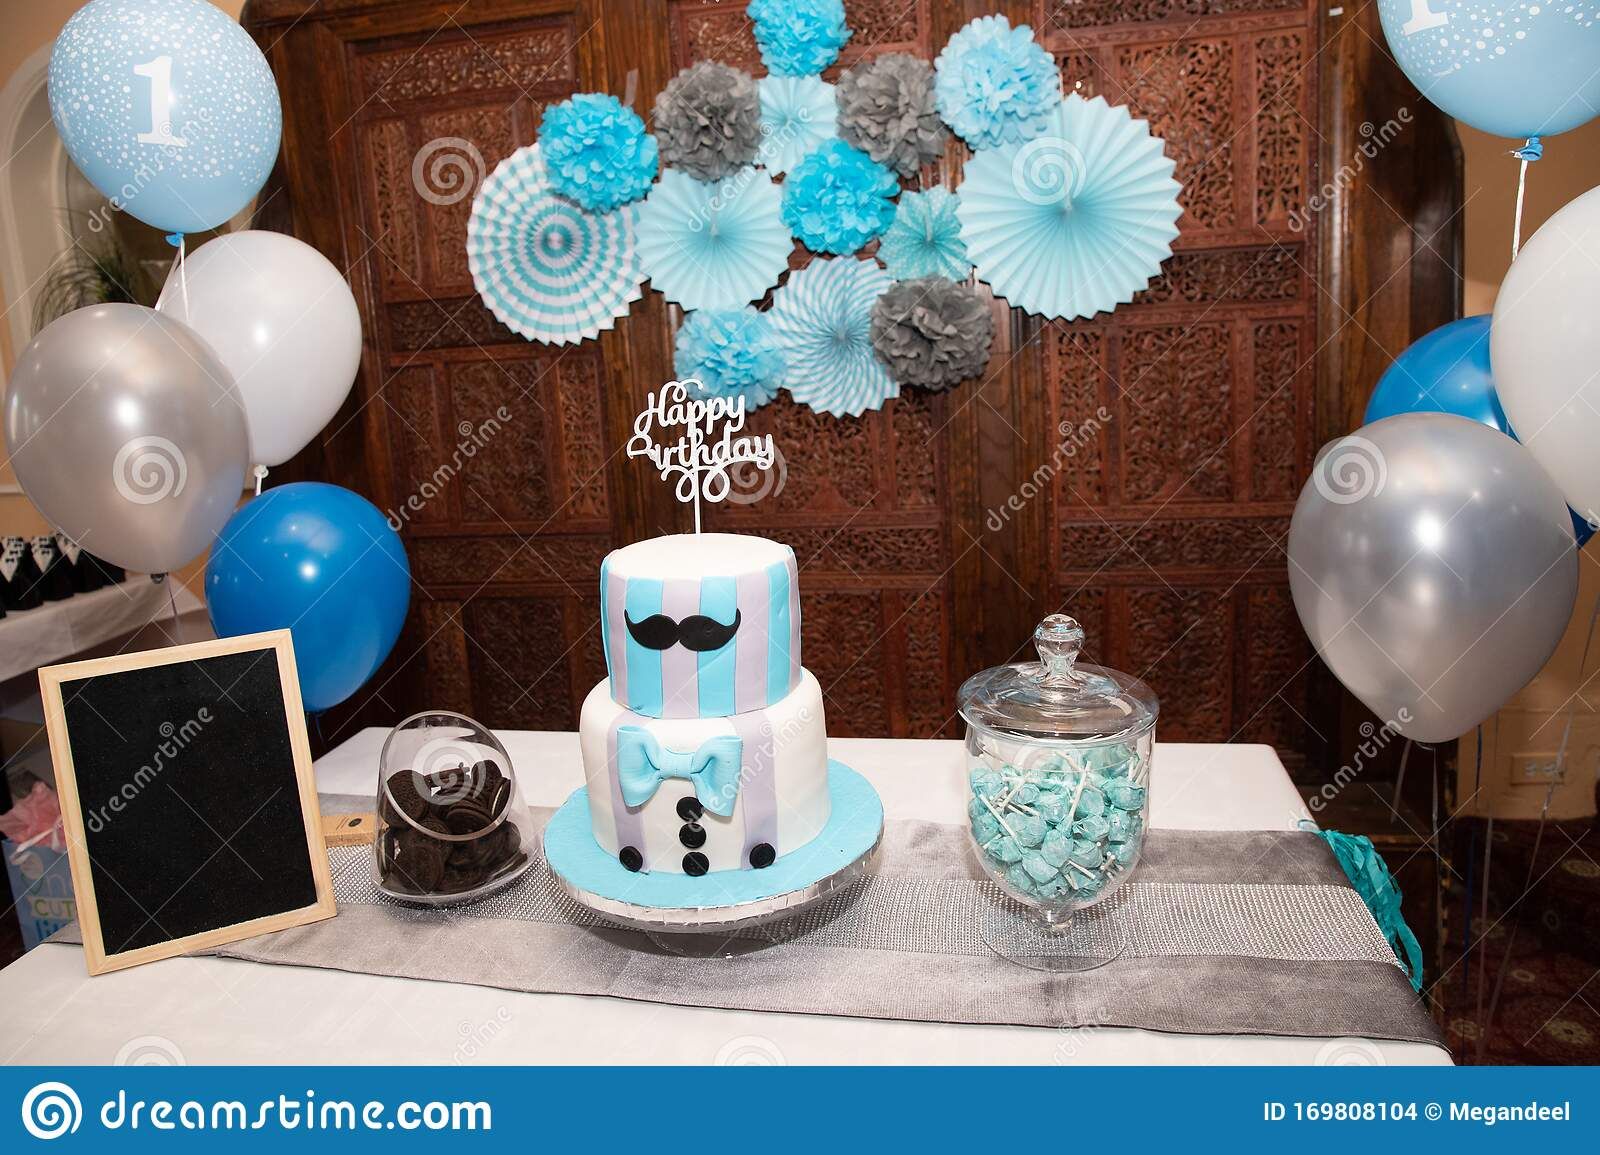 Blue Birthday Cake First Birthday Table Decoration Stock Photo Image Of Paper Setting 169808104